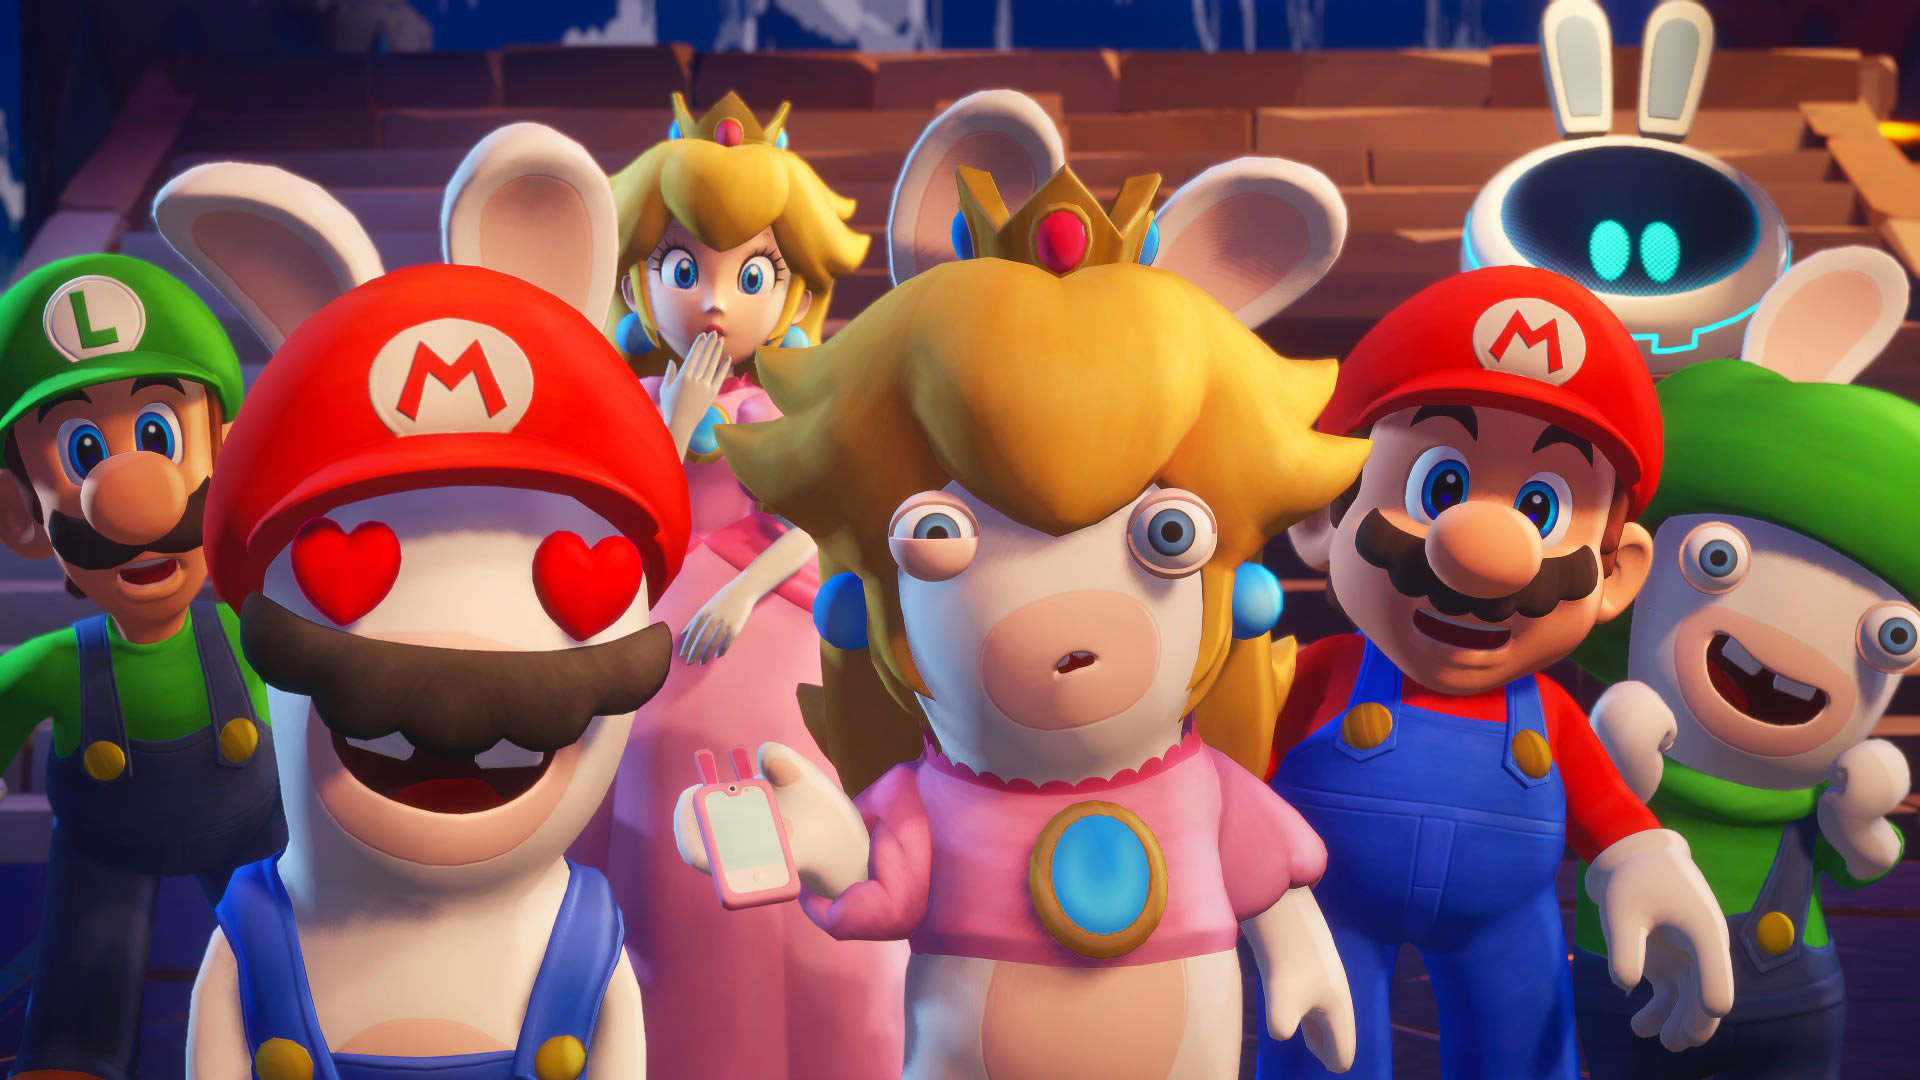 Free Mario + Rabbids: Sparks of Hope Wallpaper in 1920x1080